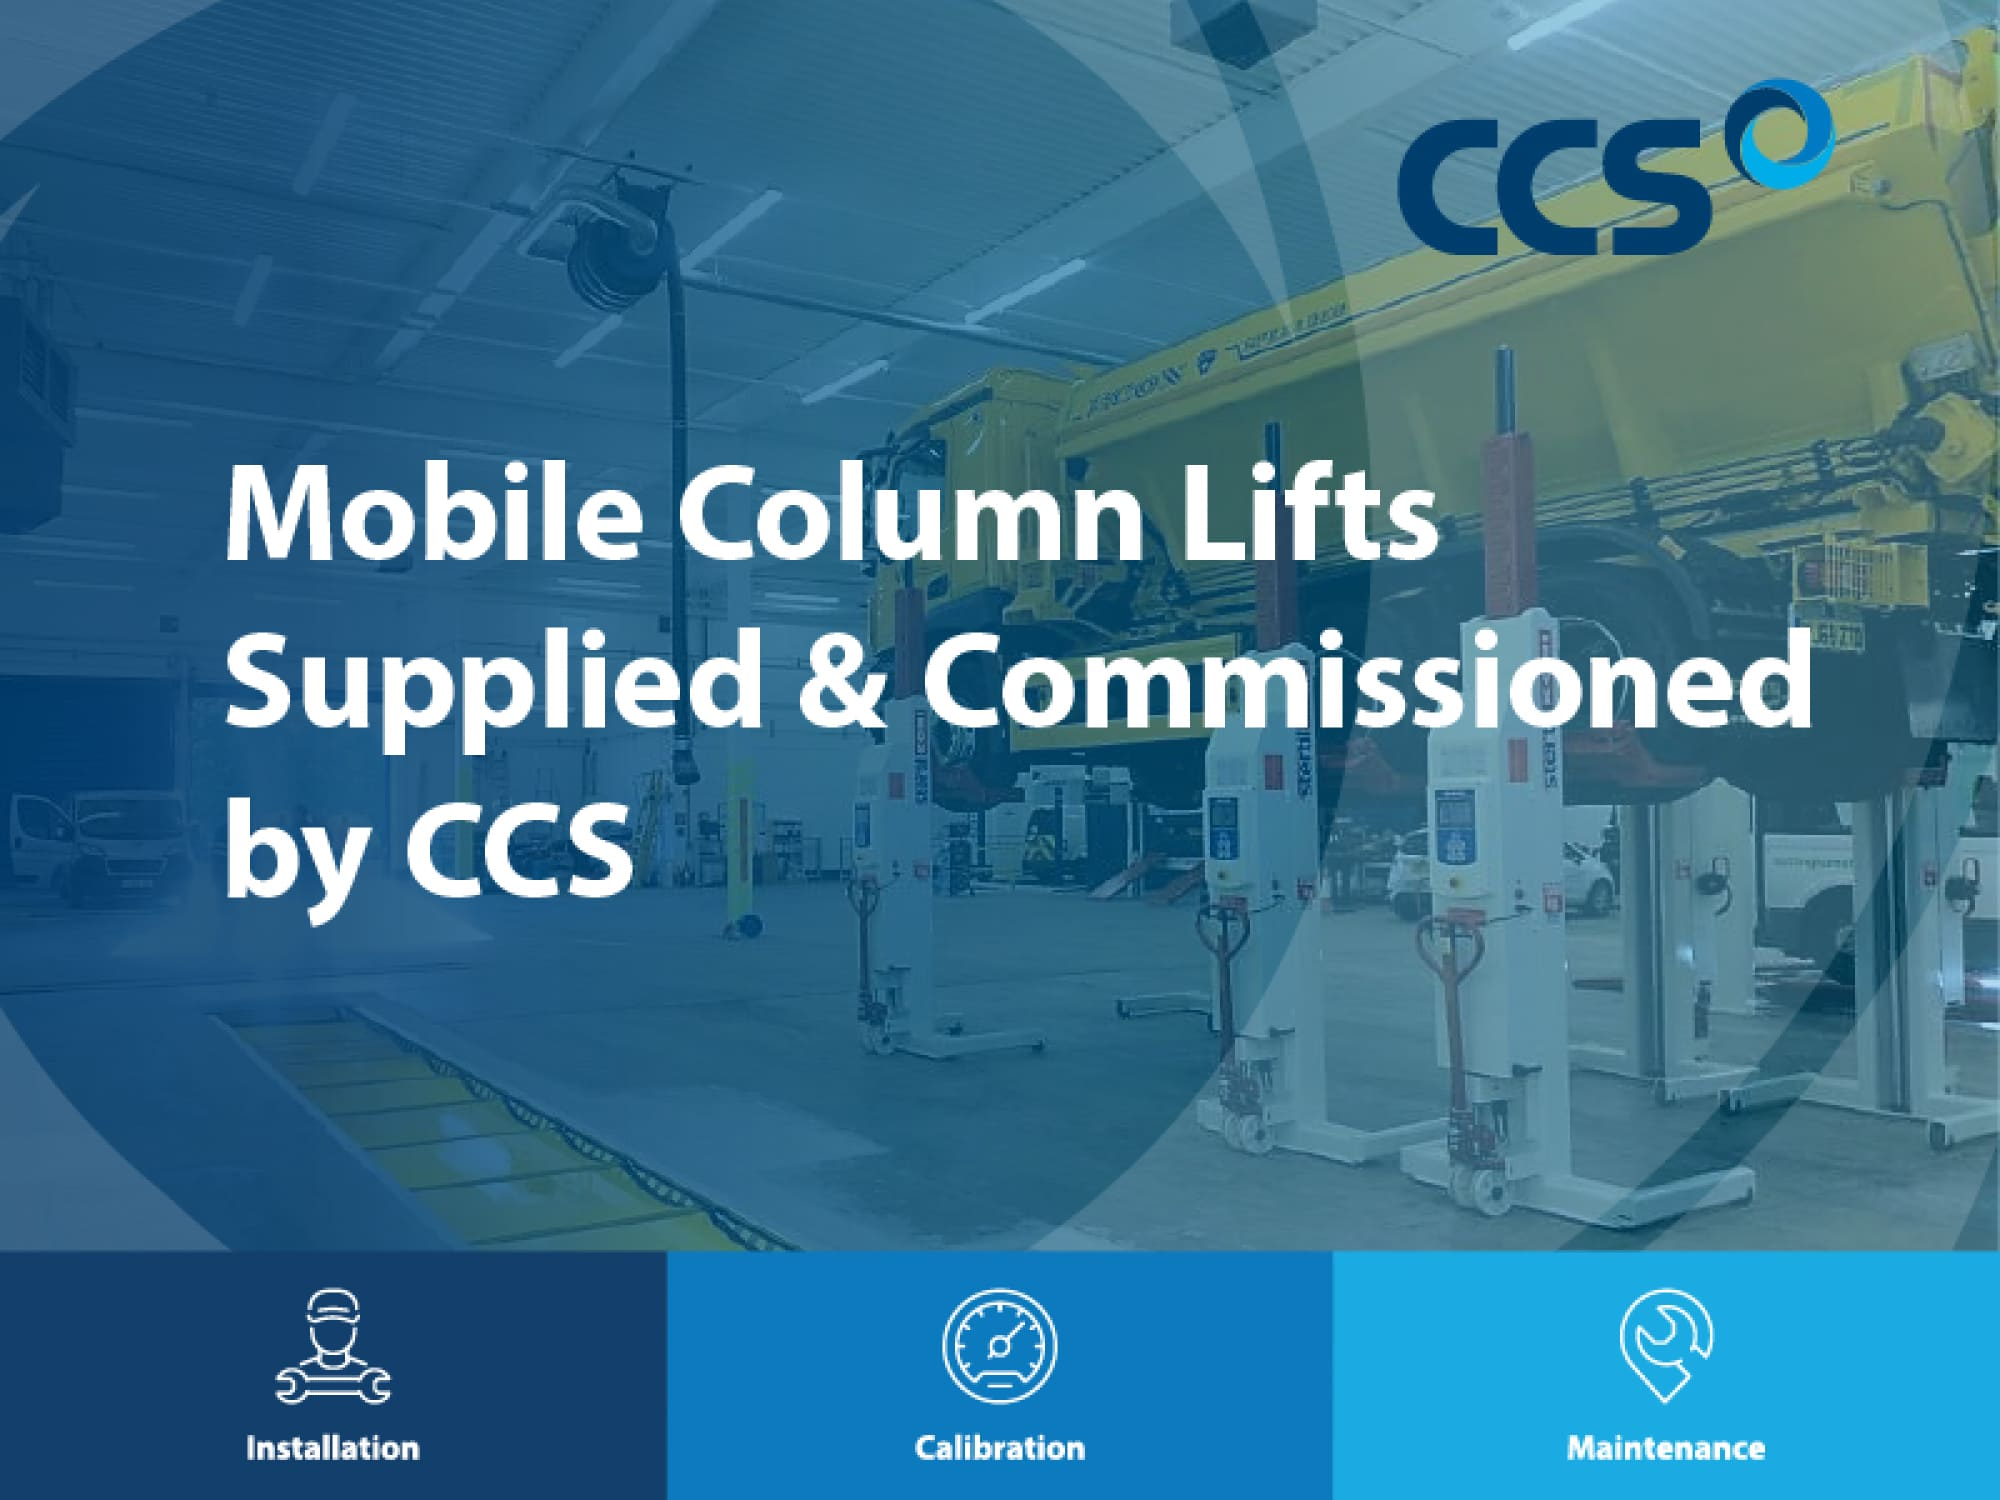 Mobile column lifts for commercial workshops supplied, commissioned & with full training from CCS